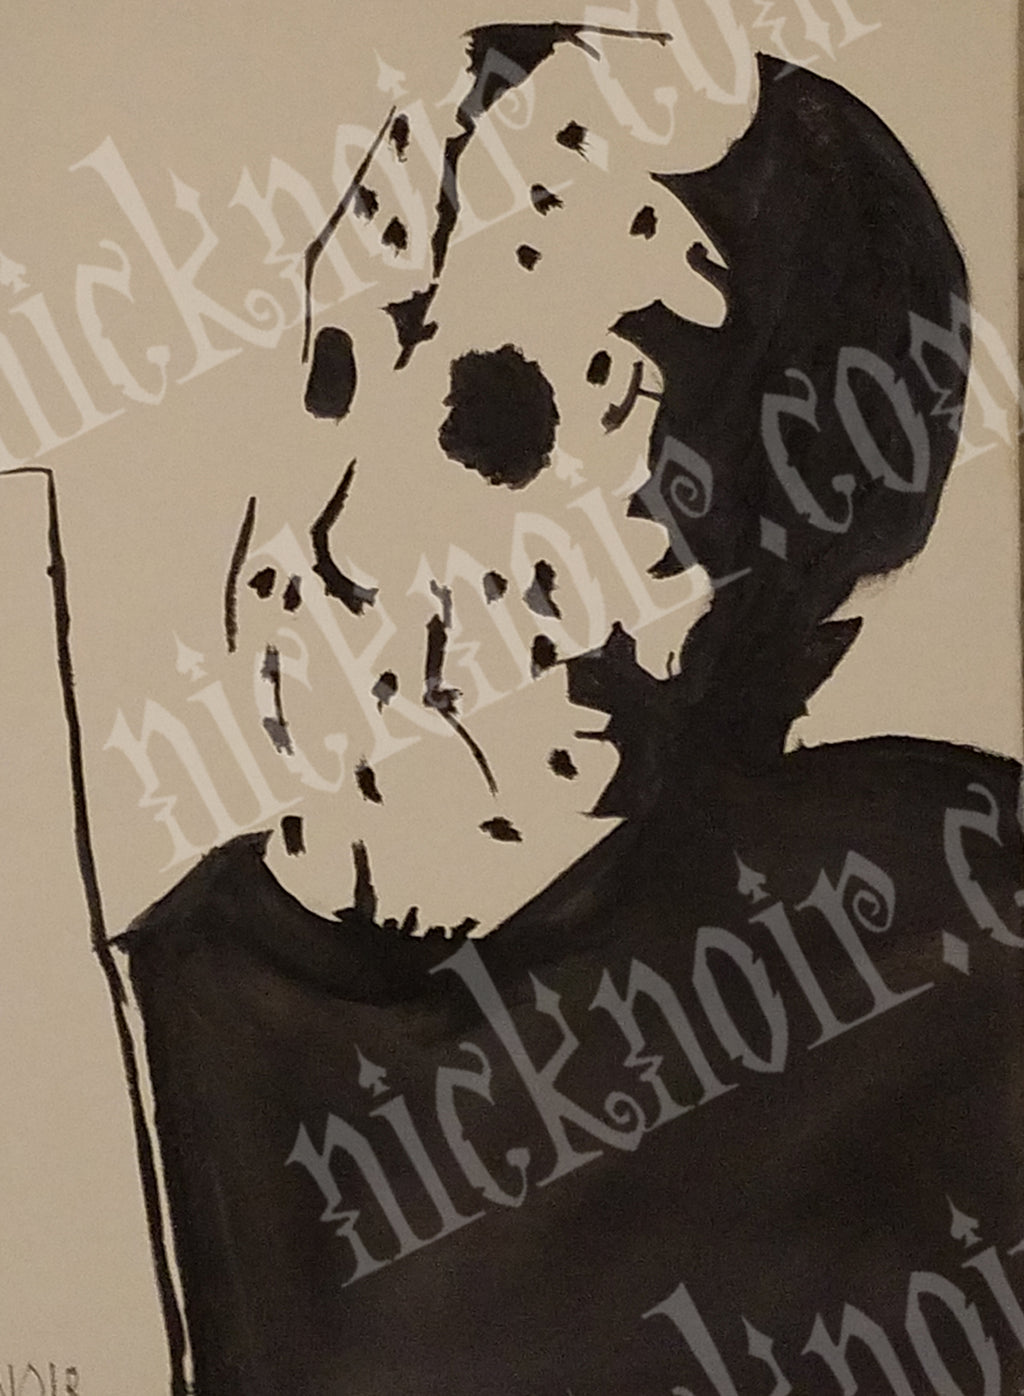 Friday the 13th Poster